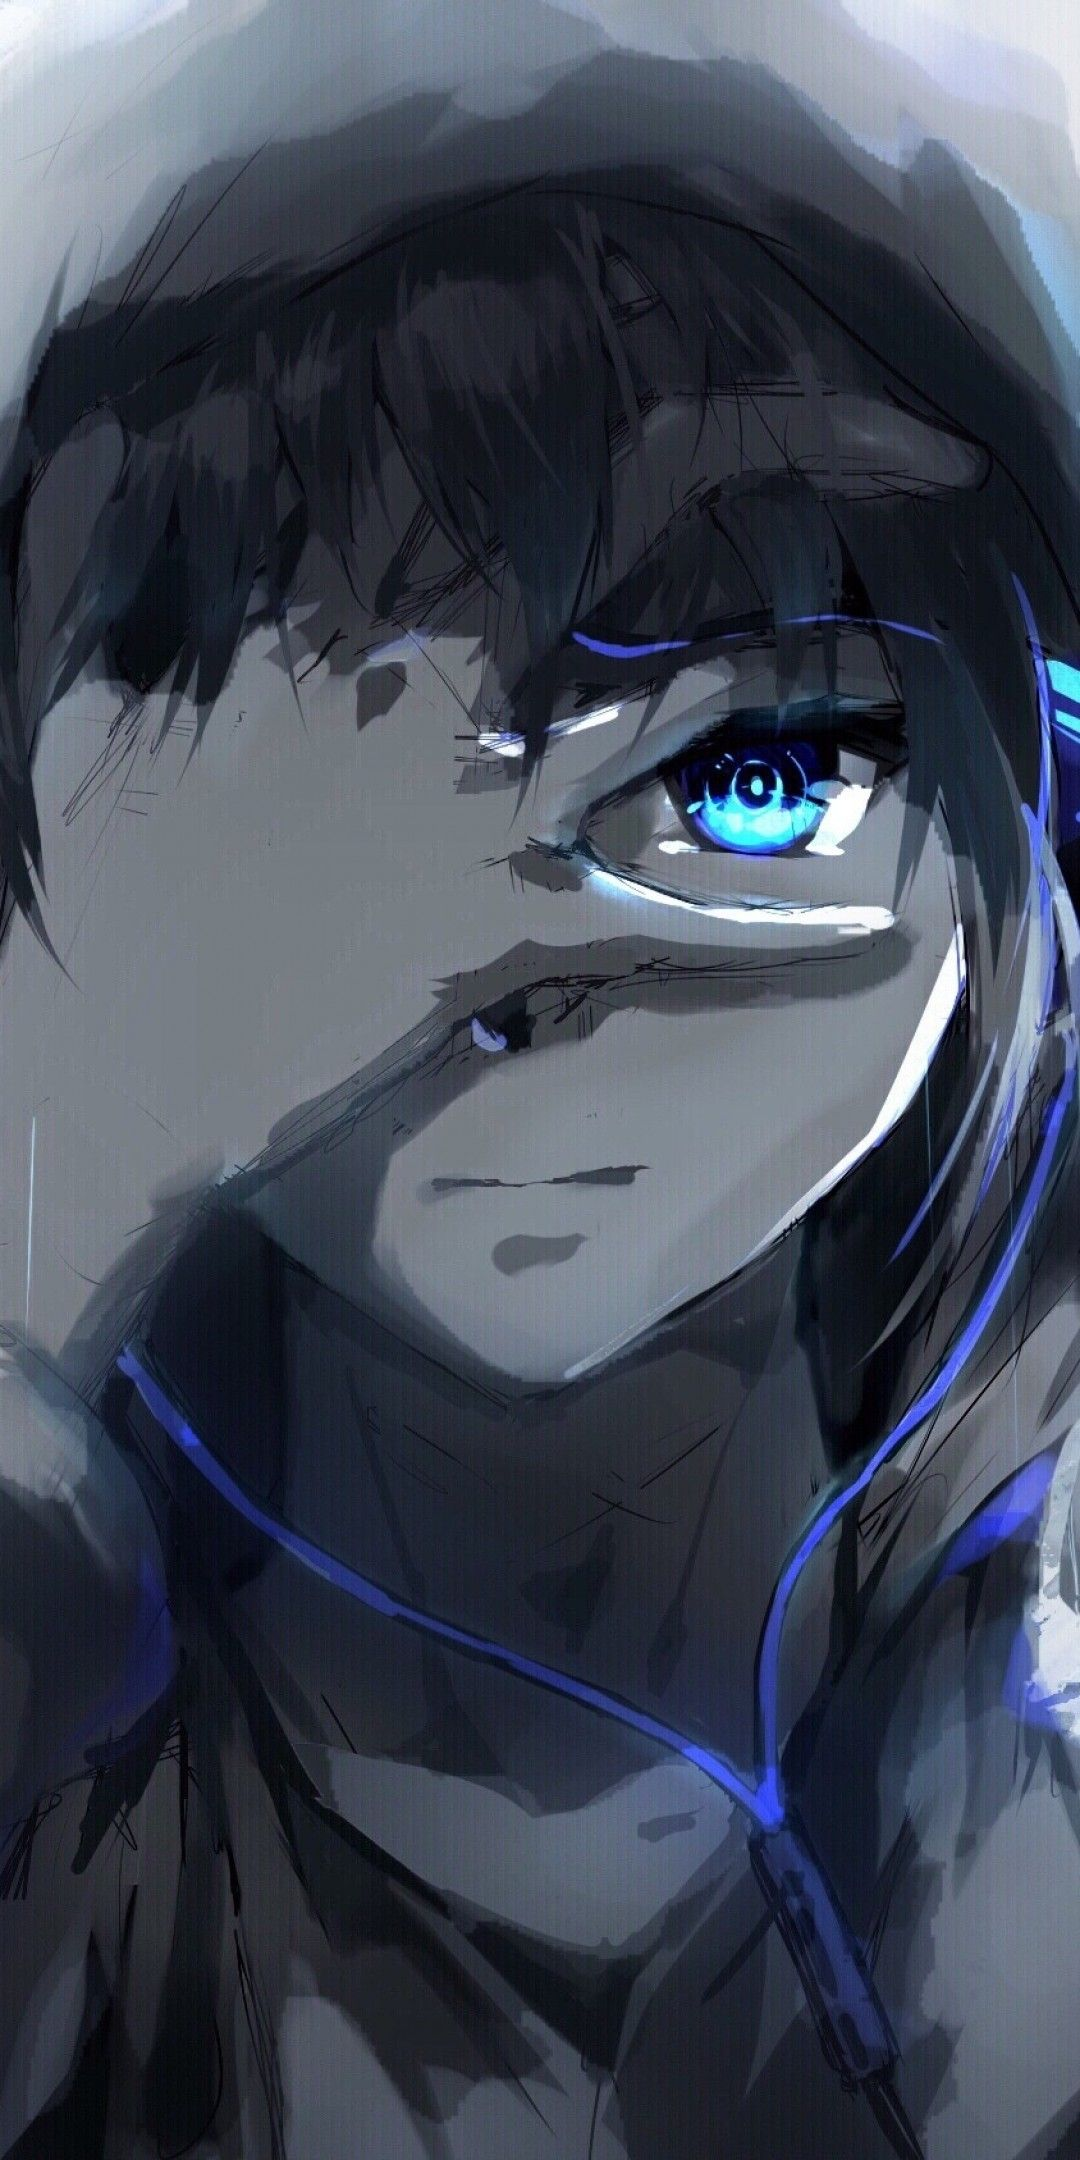 Hooded Sad Anime Boy Wallpapers - Wallpaper Cave